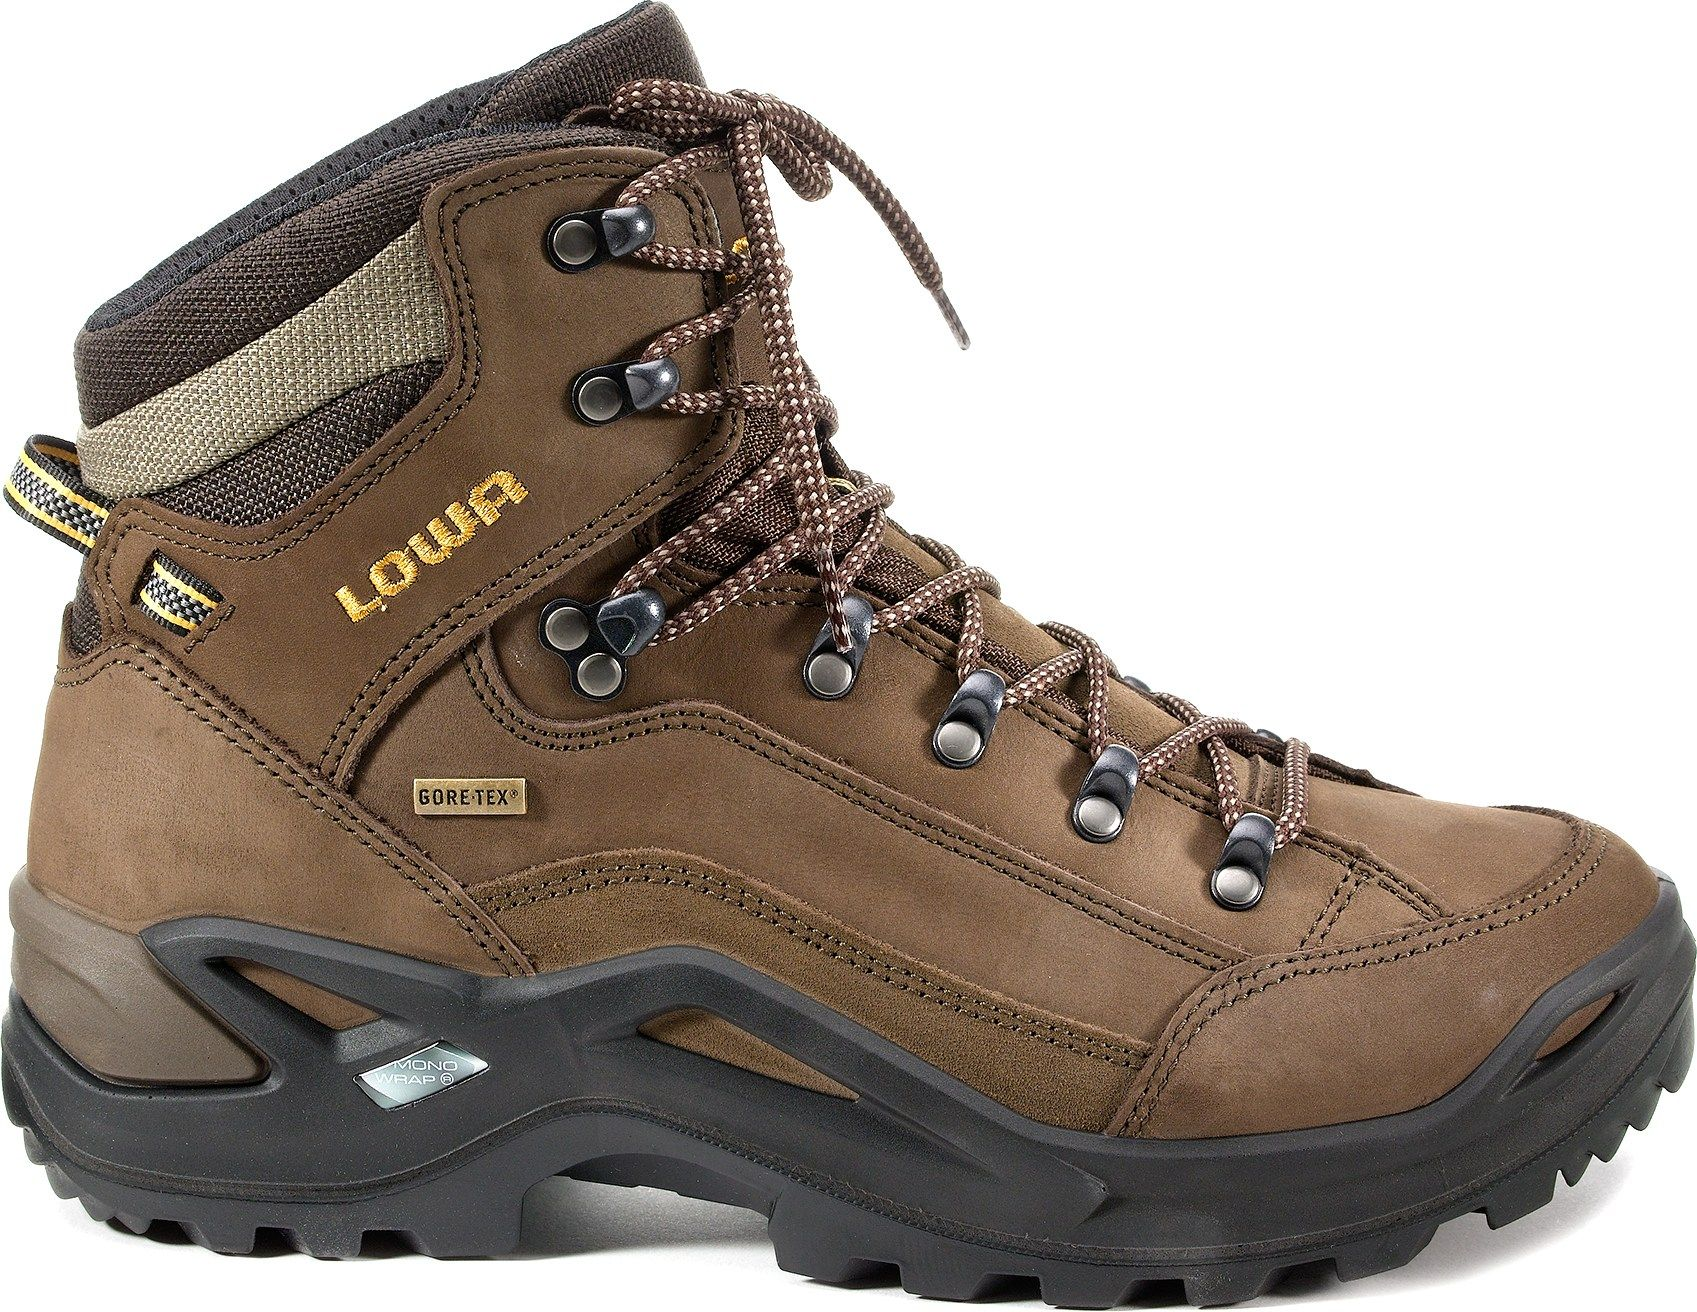 Lowa Renegade II GTX Mid Hiking Boots - Men's - Free Shipping at REI.com